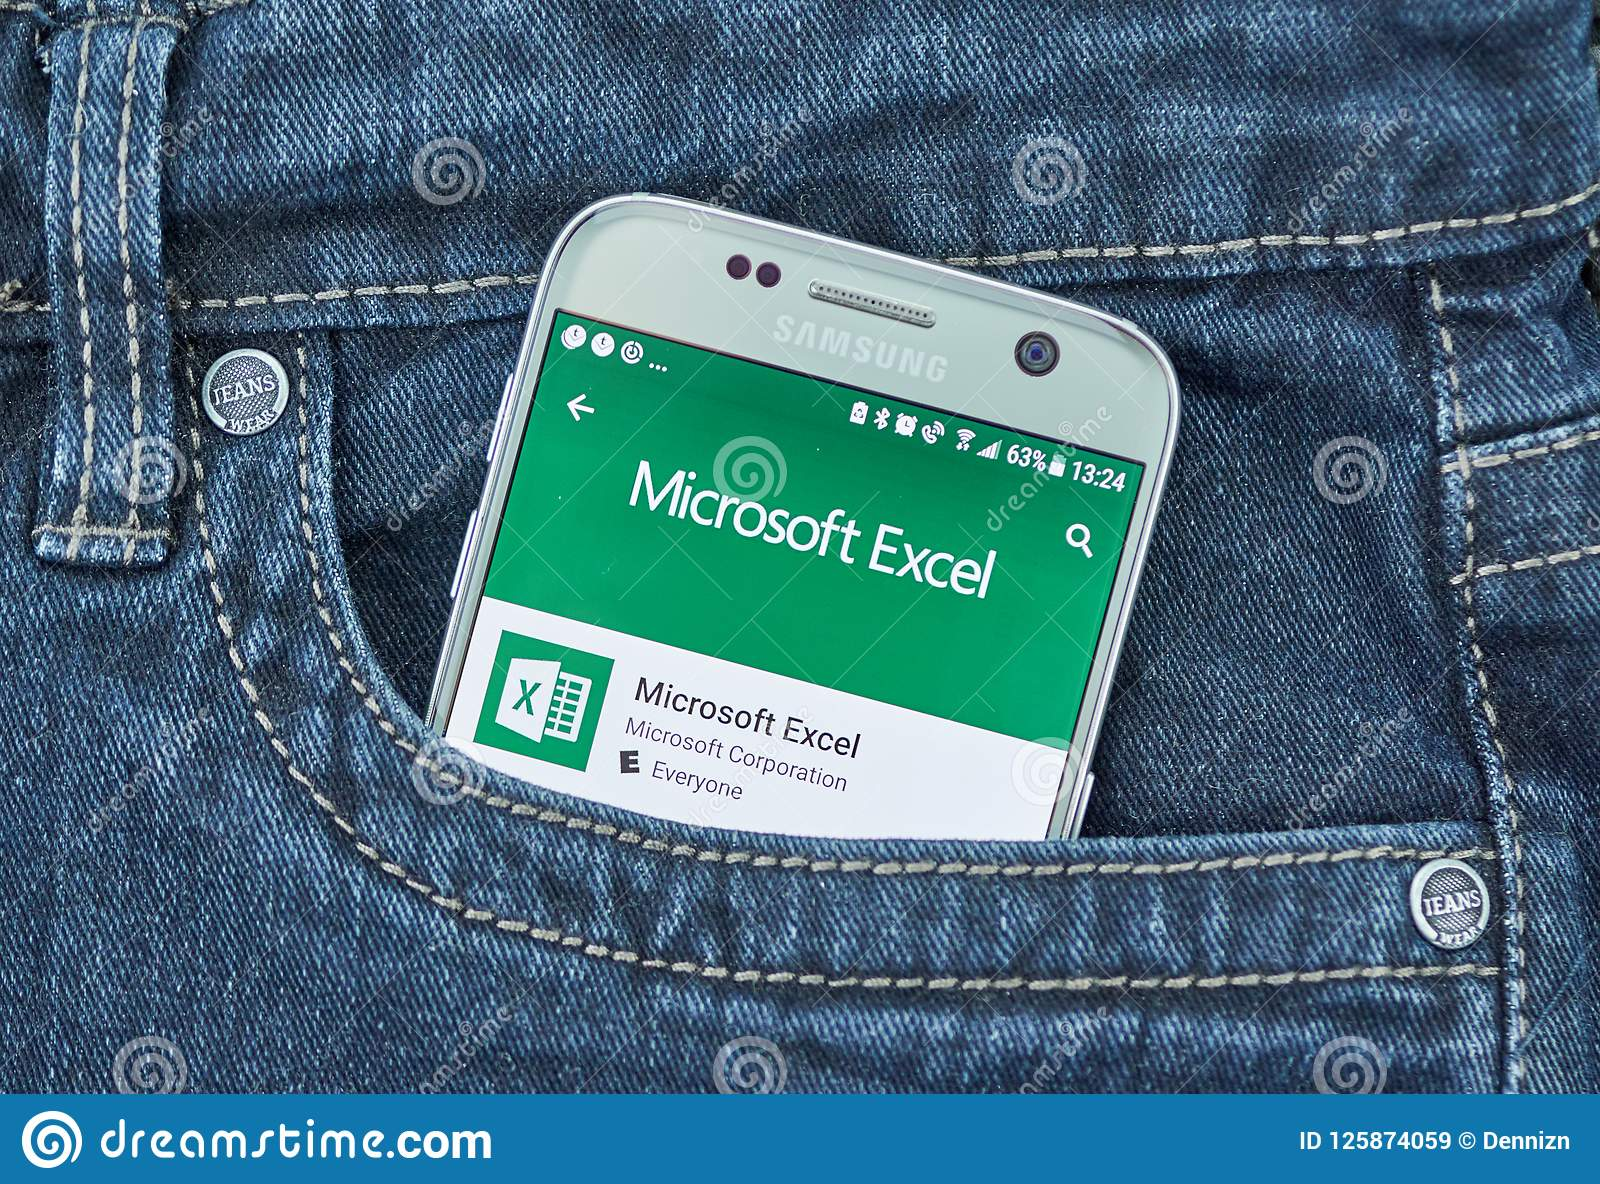 Microsoft Excel Mobile App  Editorial Stock Image - Image of green